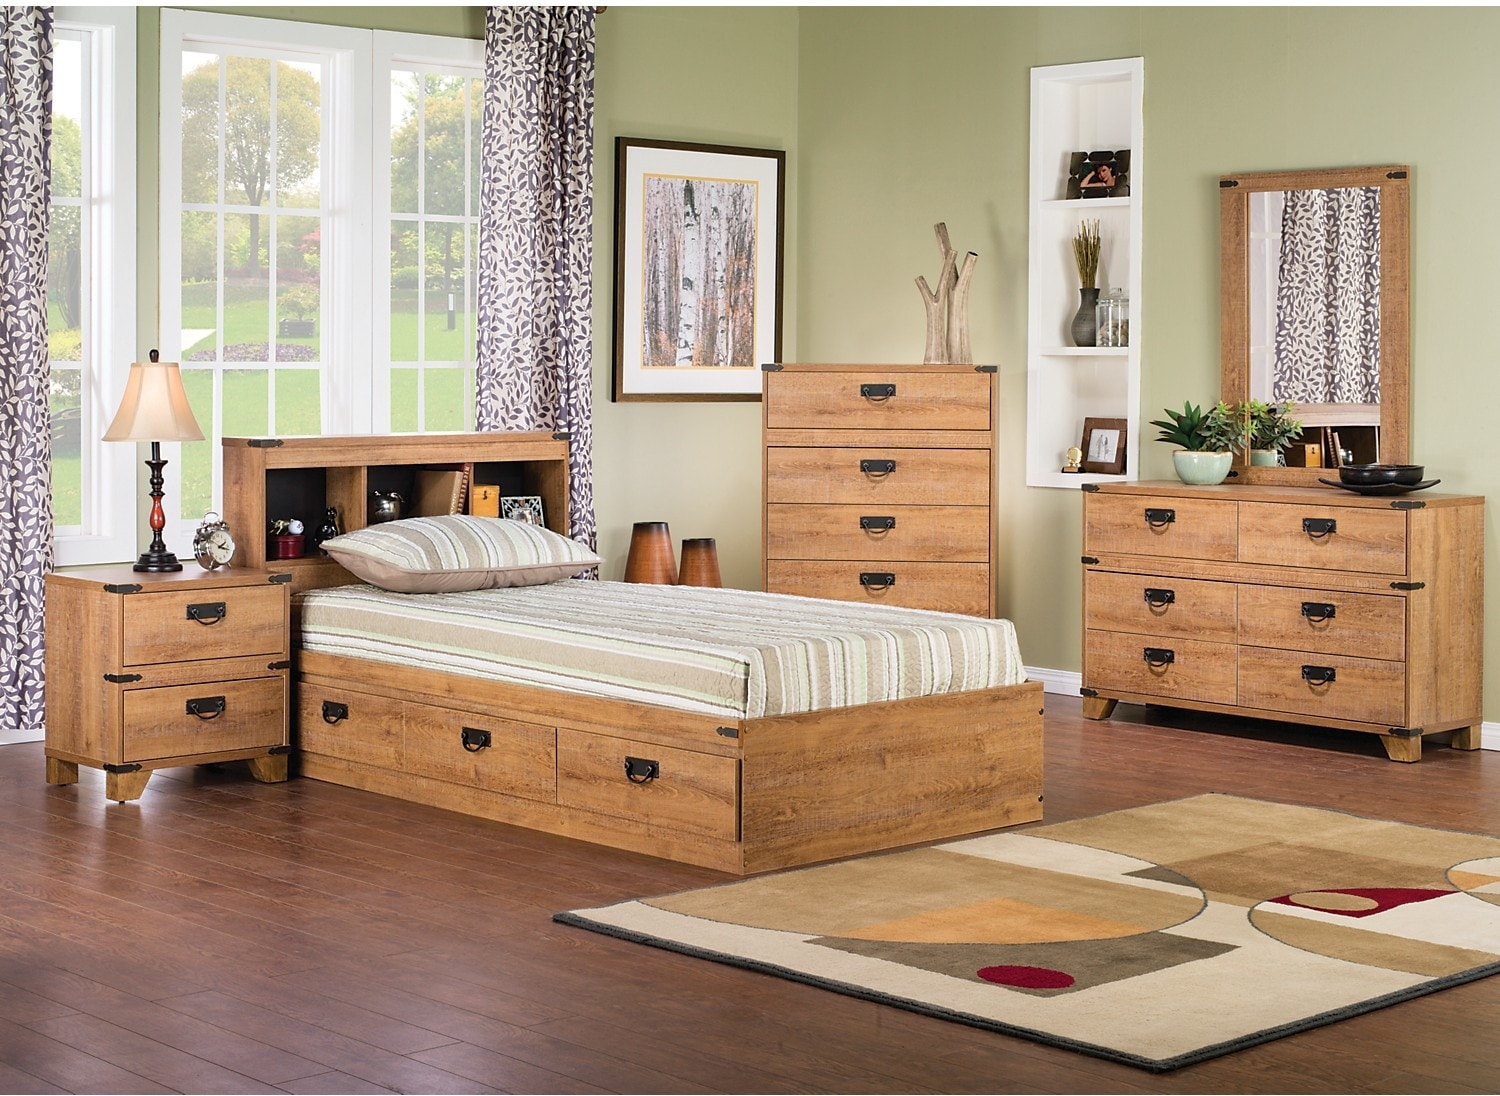 Driftwood 5-Piece Mates Bedroom Package